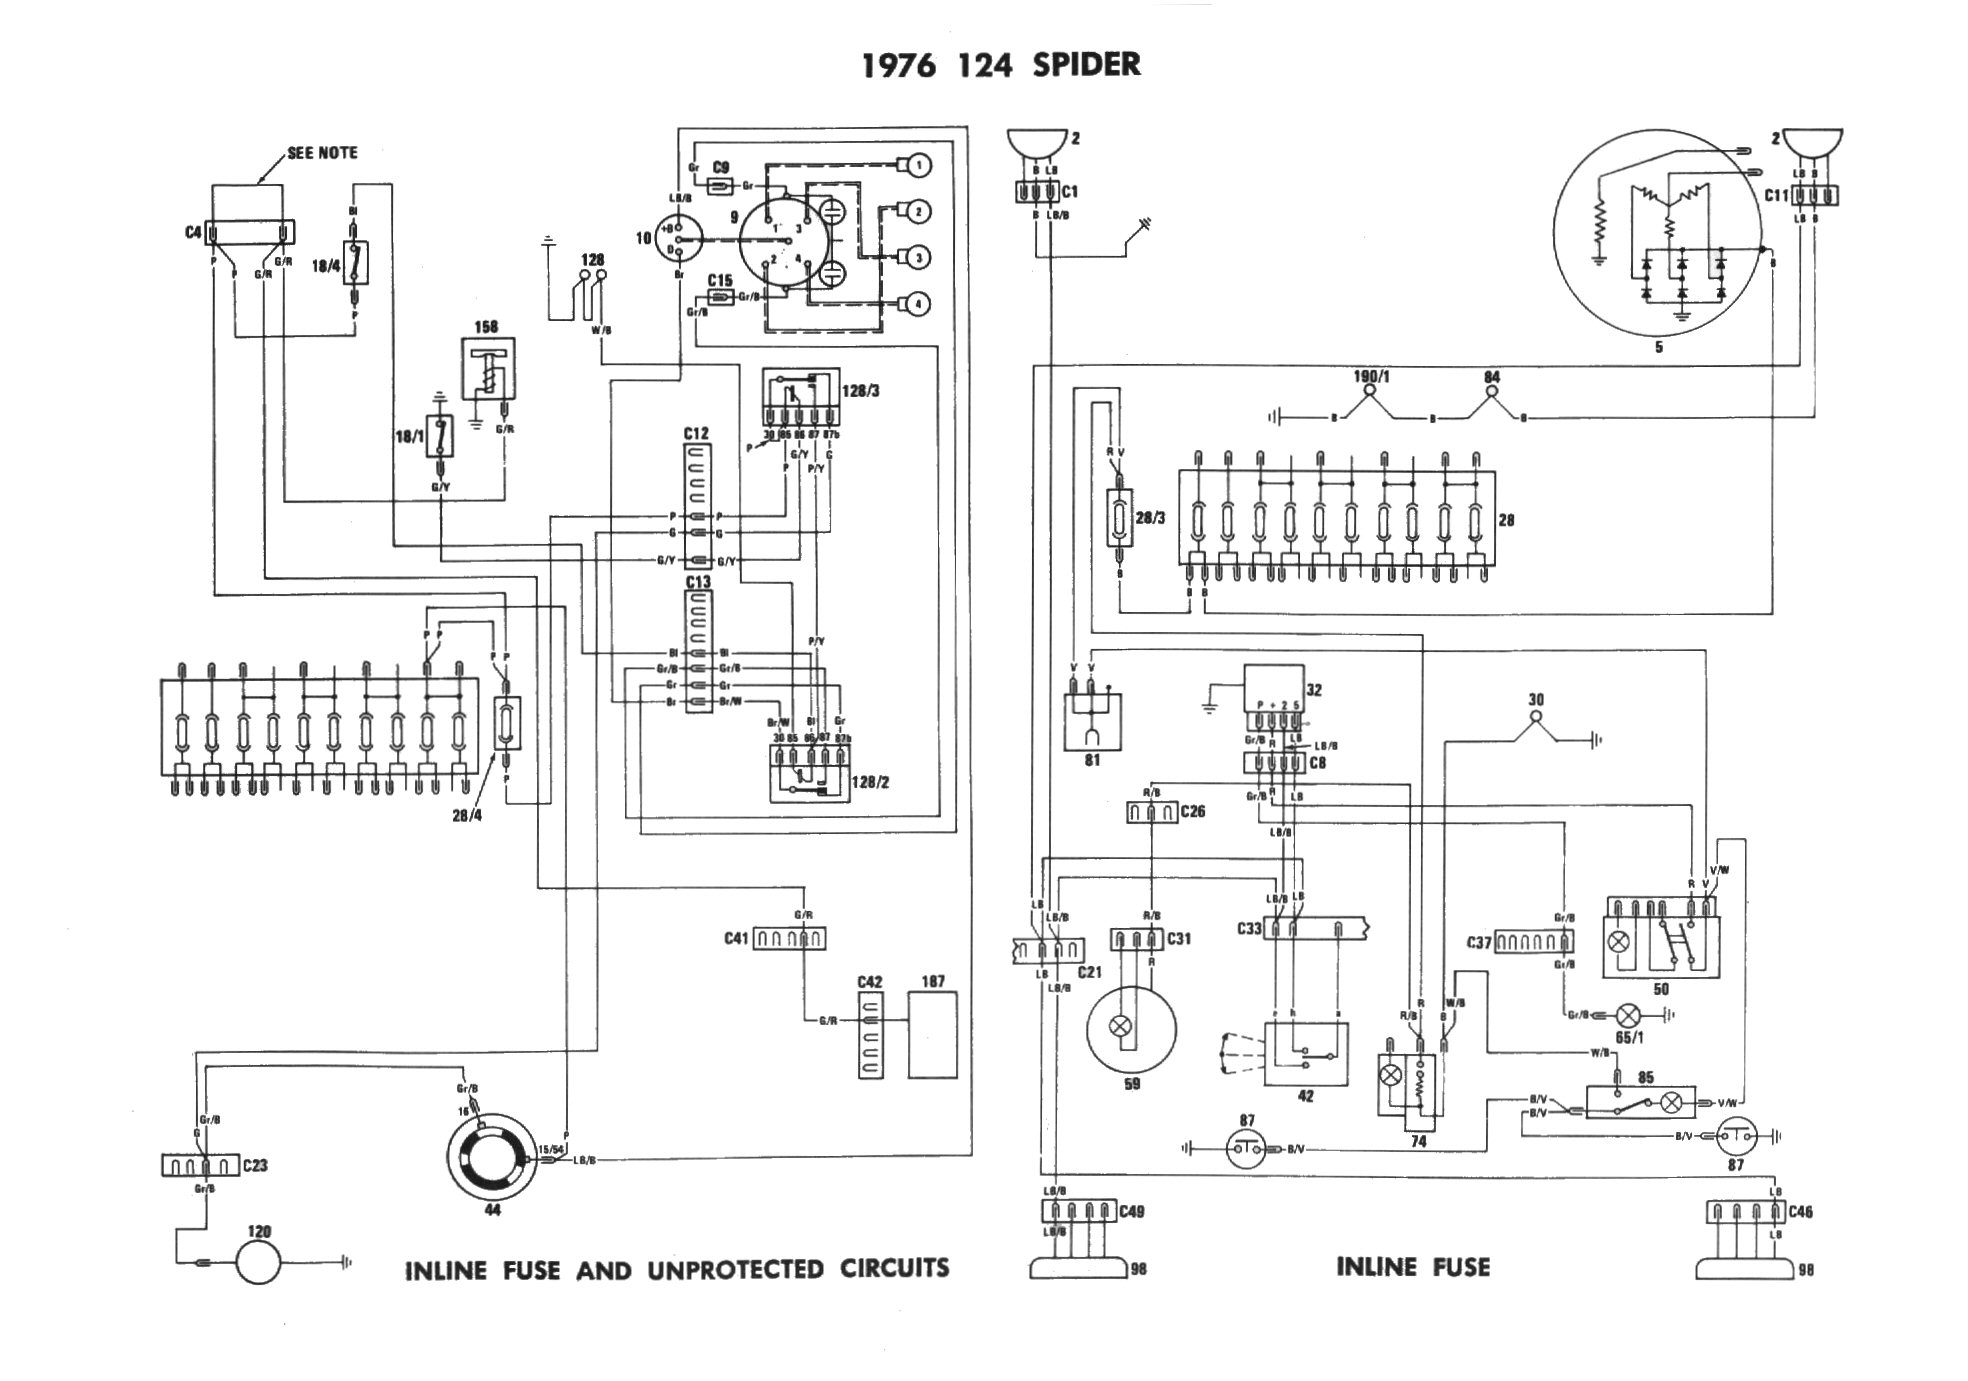 hight resolution of 1980 fiat spider wiring diagram wiring diagrams scematic ford mustang differential diagram 1974 ford mustang fuel system diagram